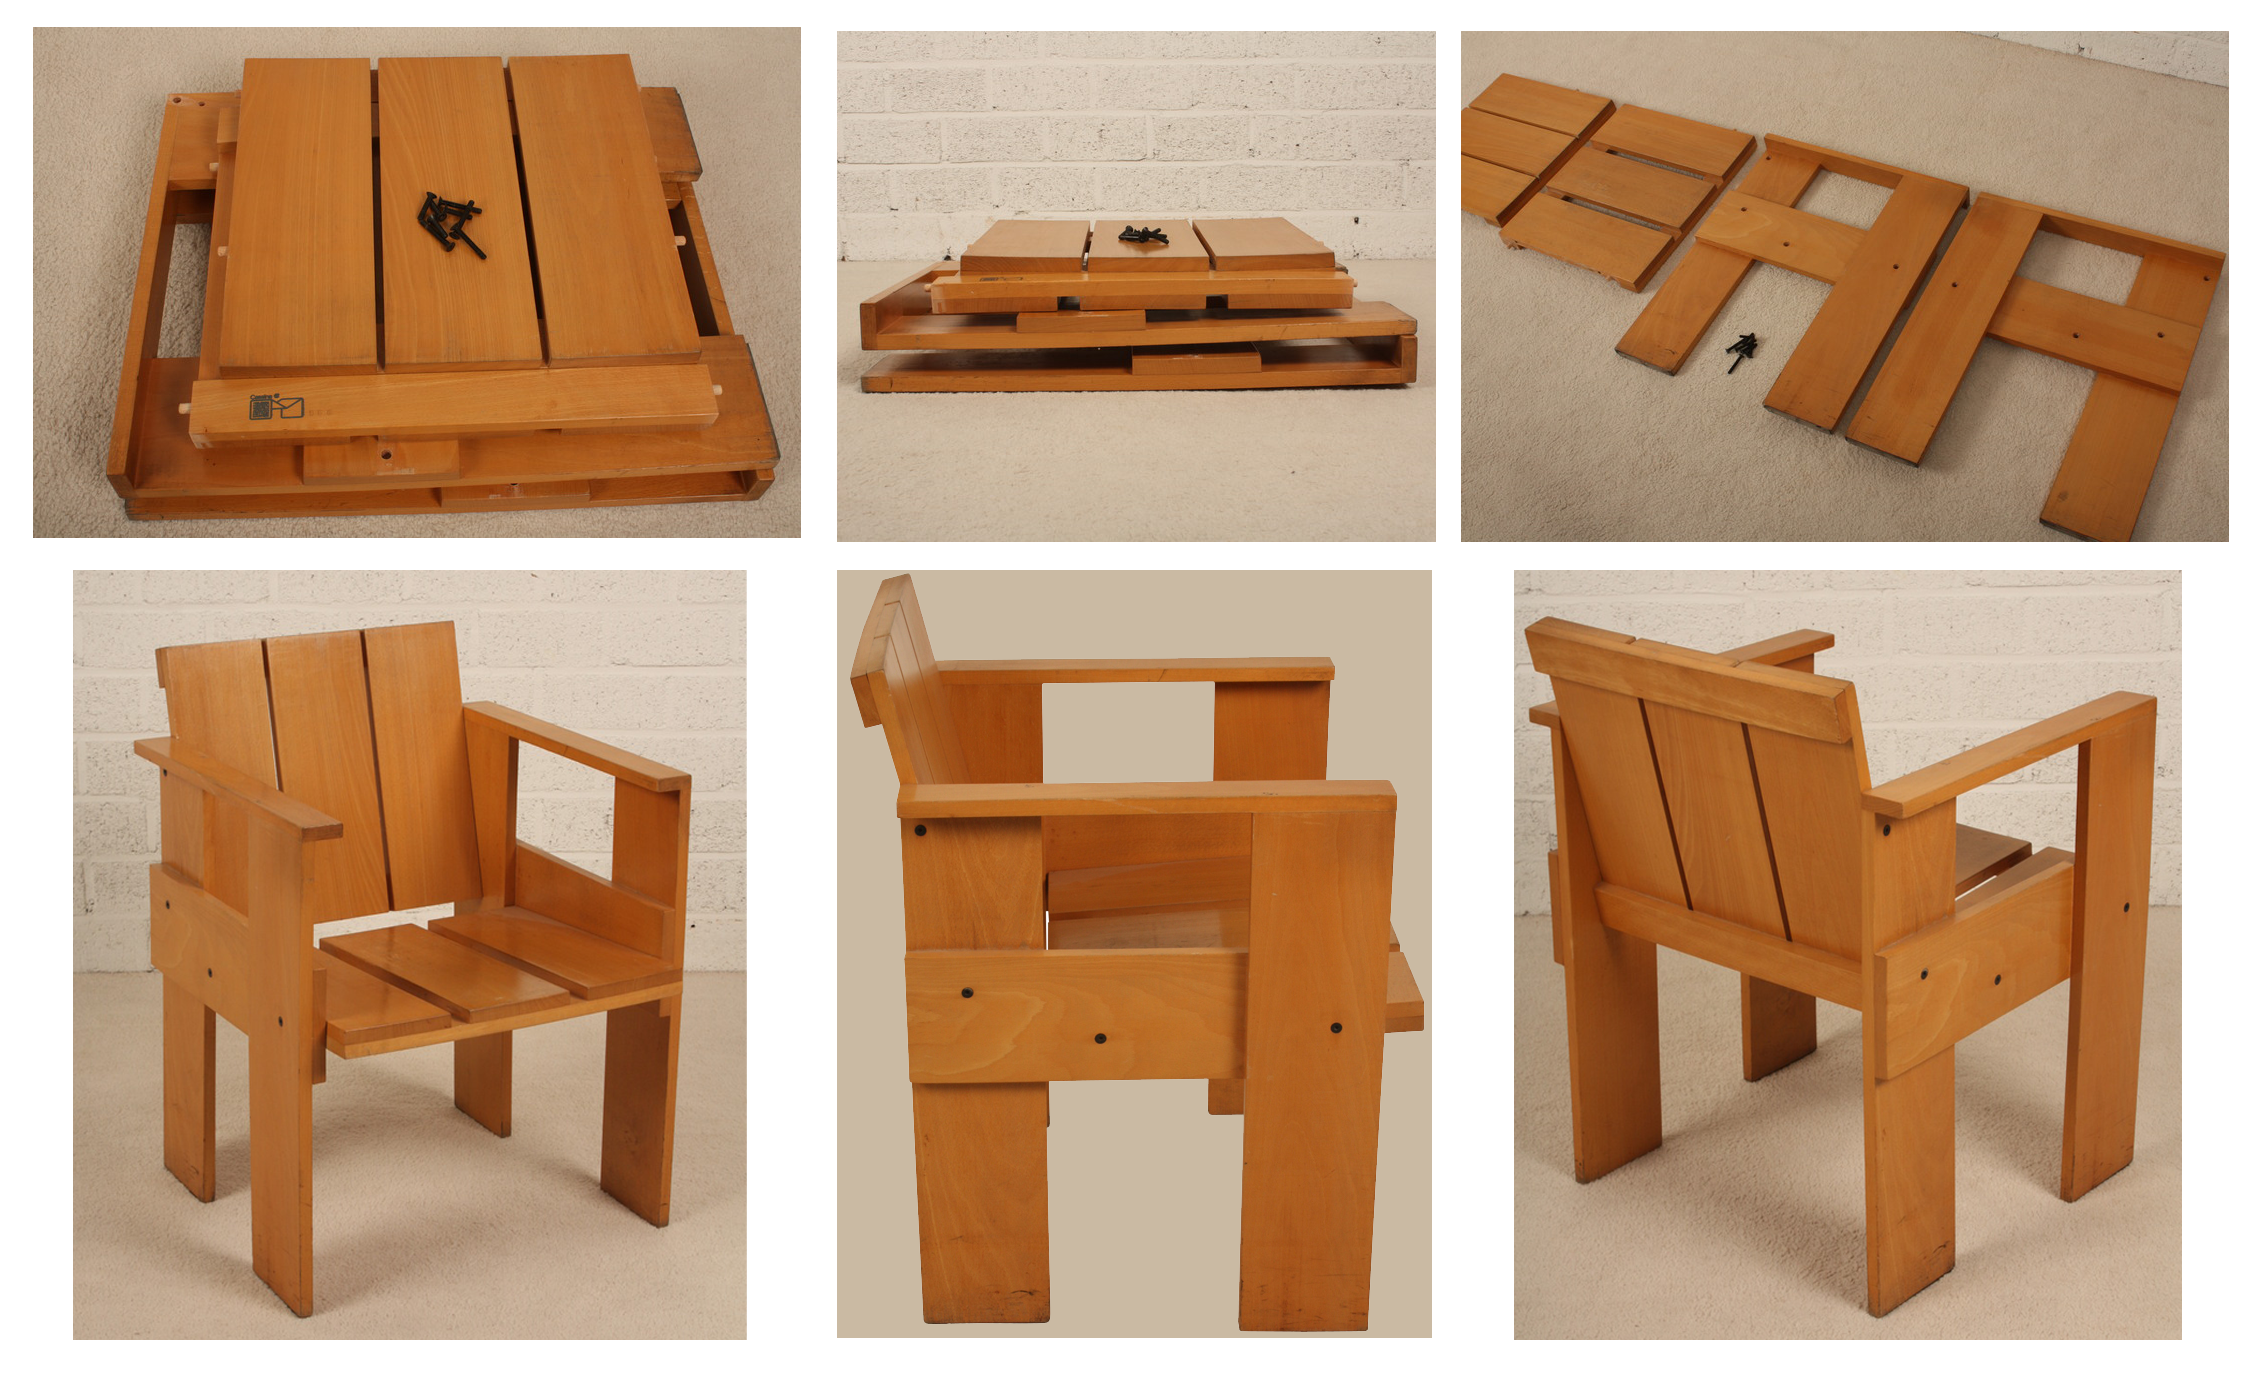 Magnificent Rietveld Crate Chair Plans Galleryhip Com The Hippest Download Free Architecture Designs Scobabritishbridgeorg